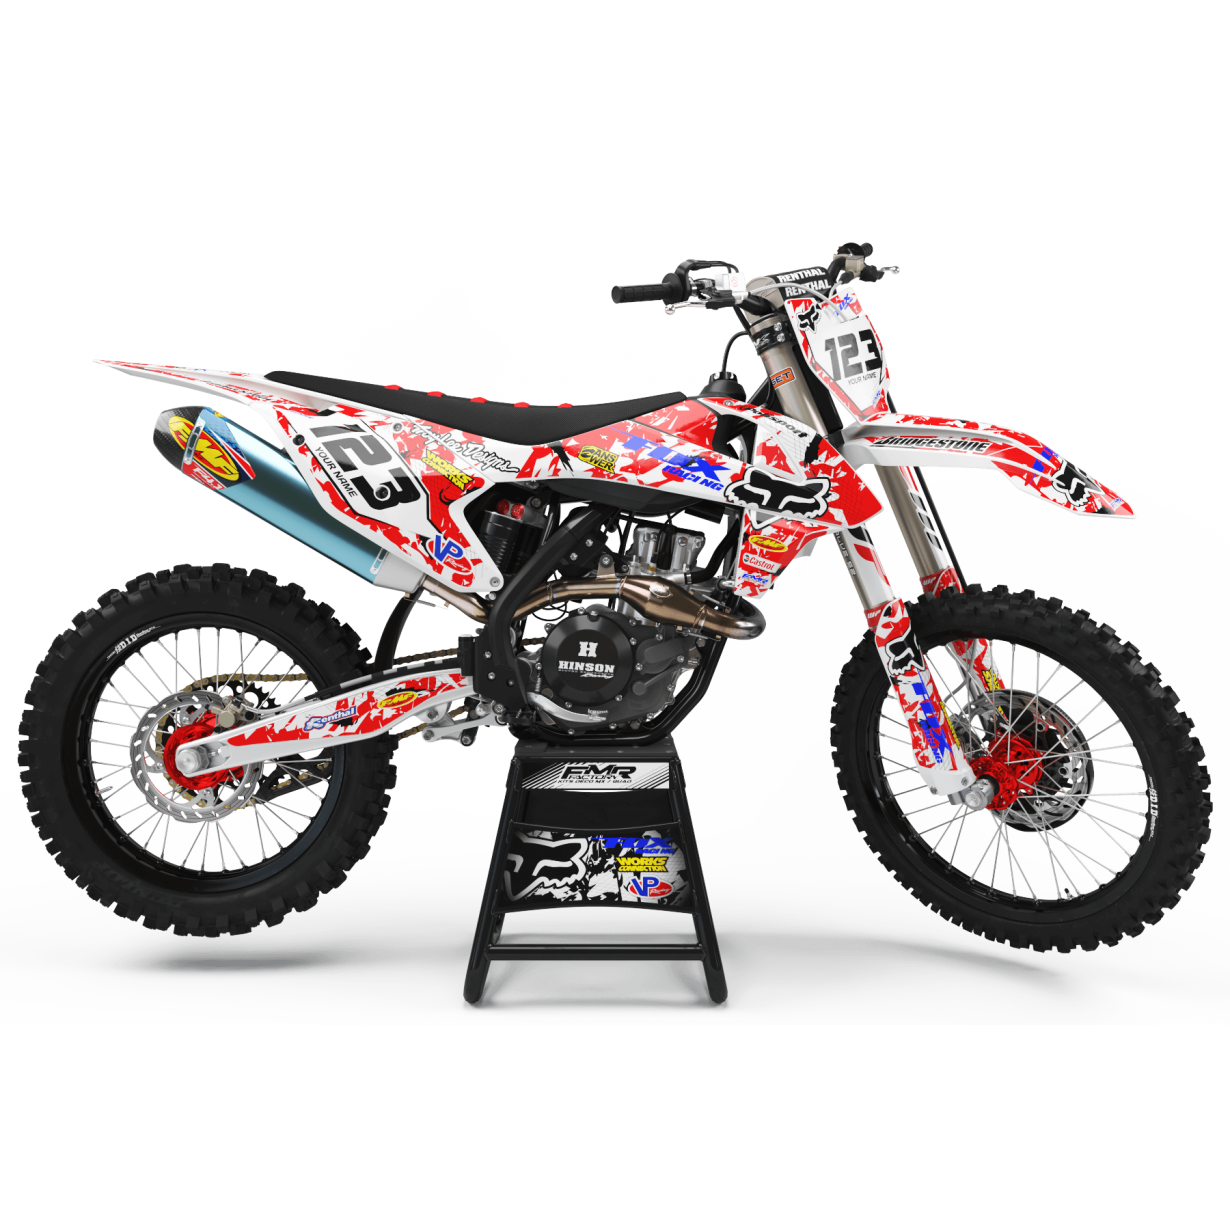 Kit deco perso ktm a9a 0